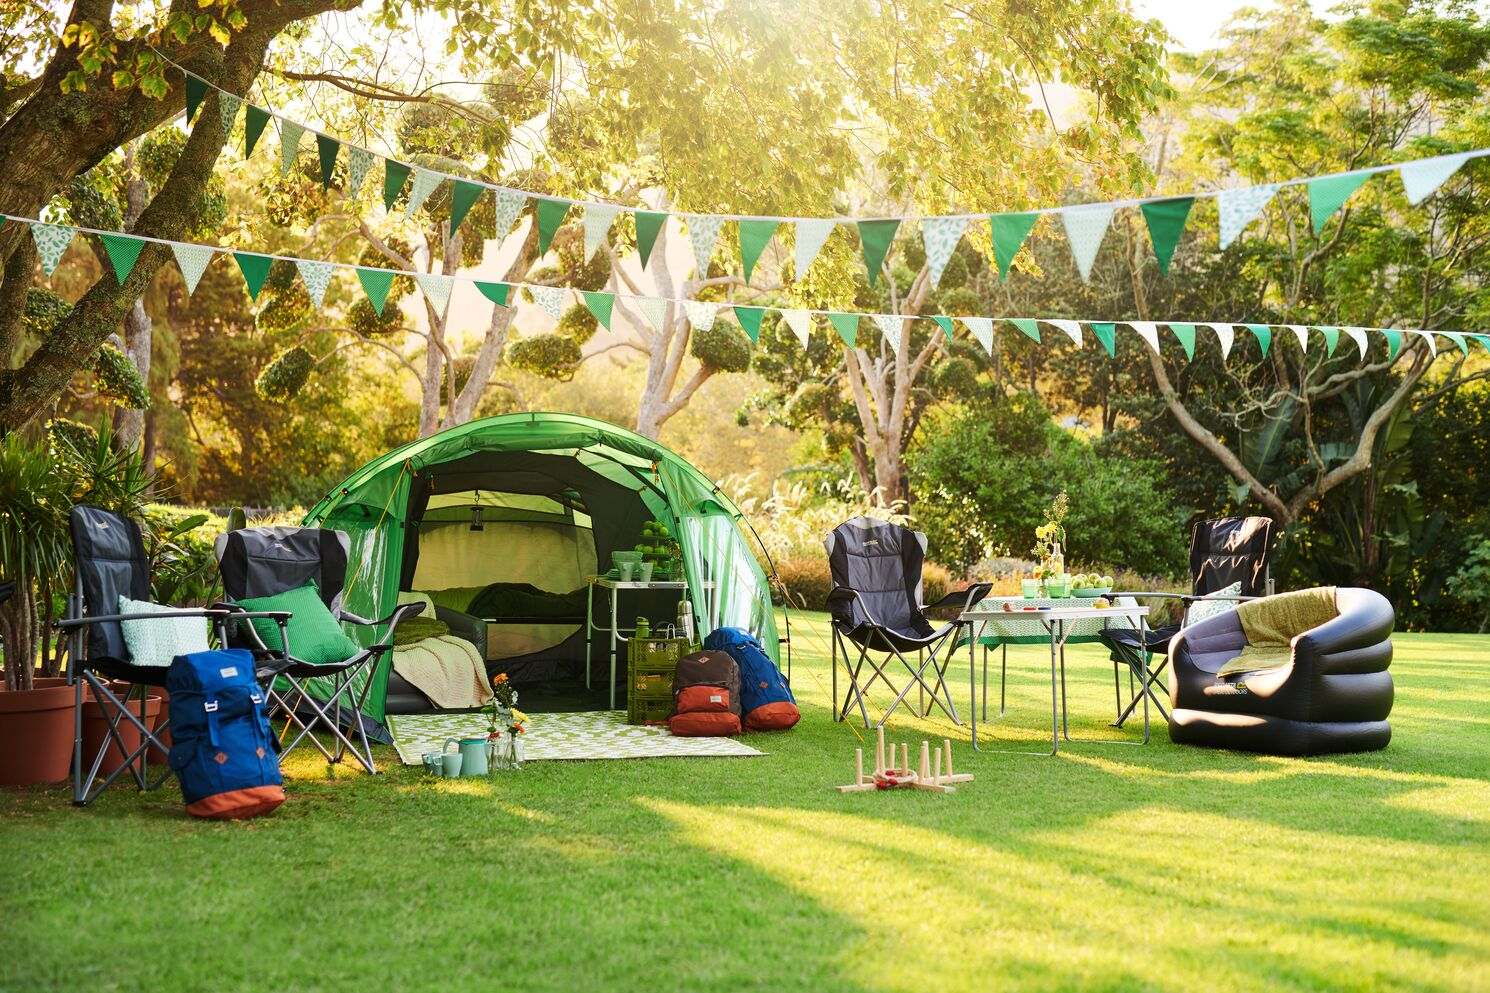 A full family camping setup, including a tent, camping furniture and kids games.